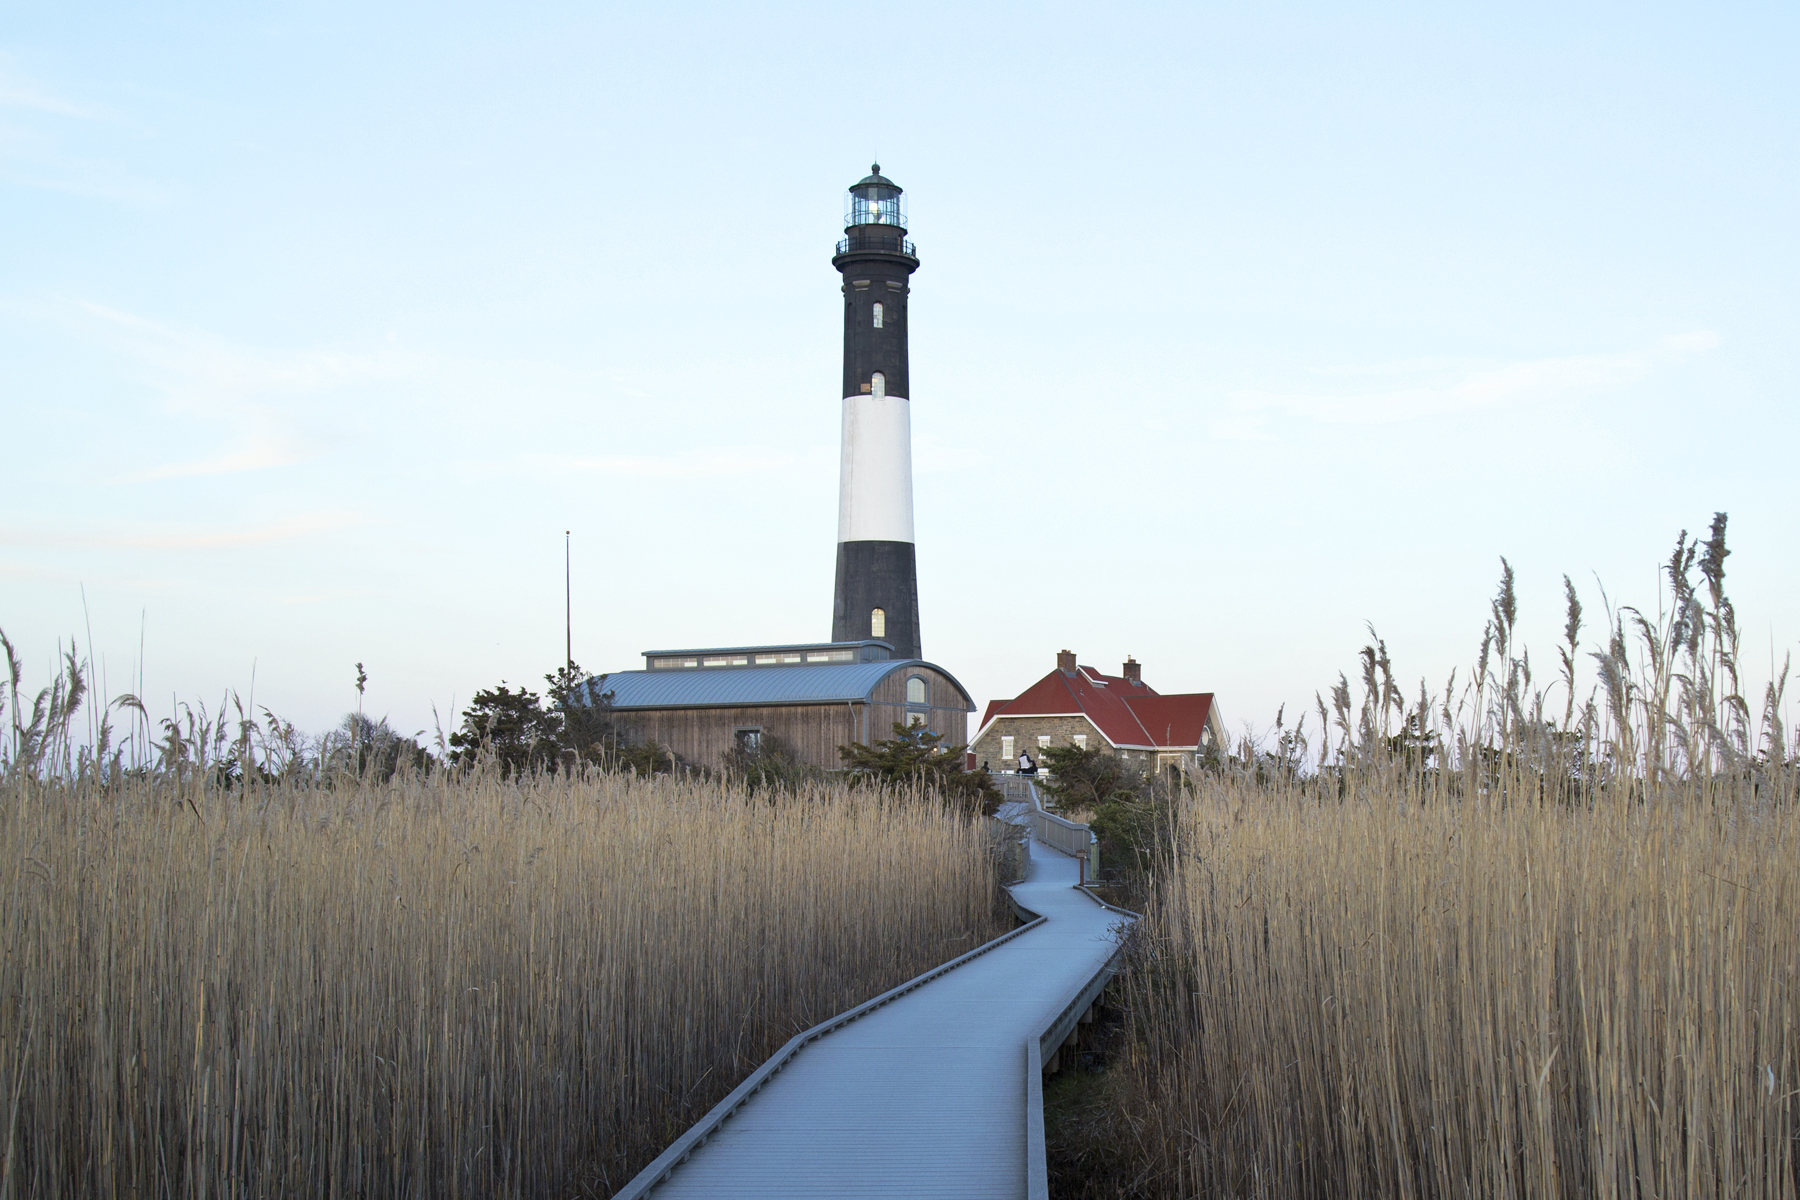 A lighthouse on Long Island, with a walkway leading to it.